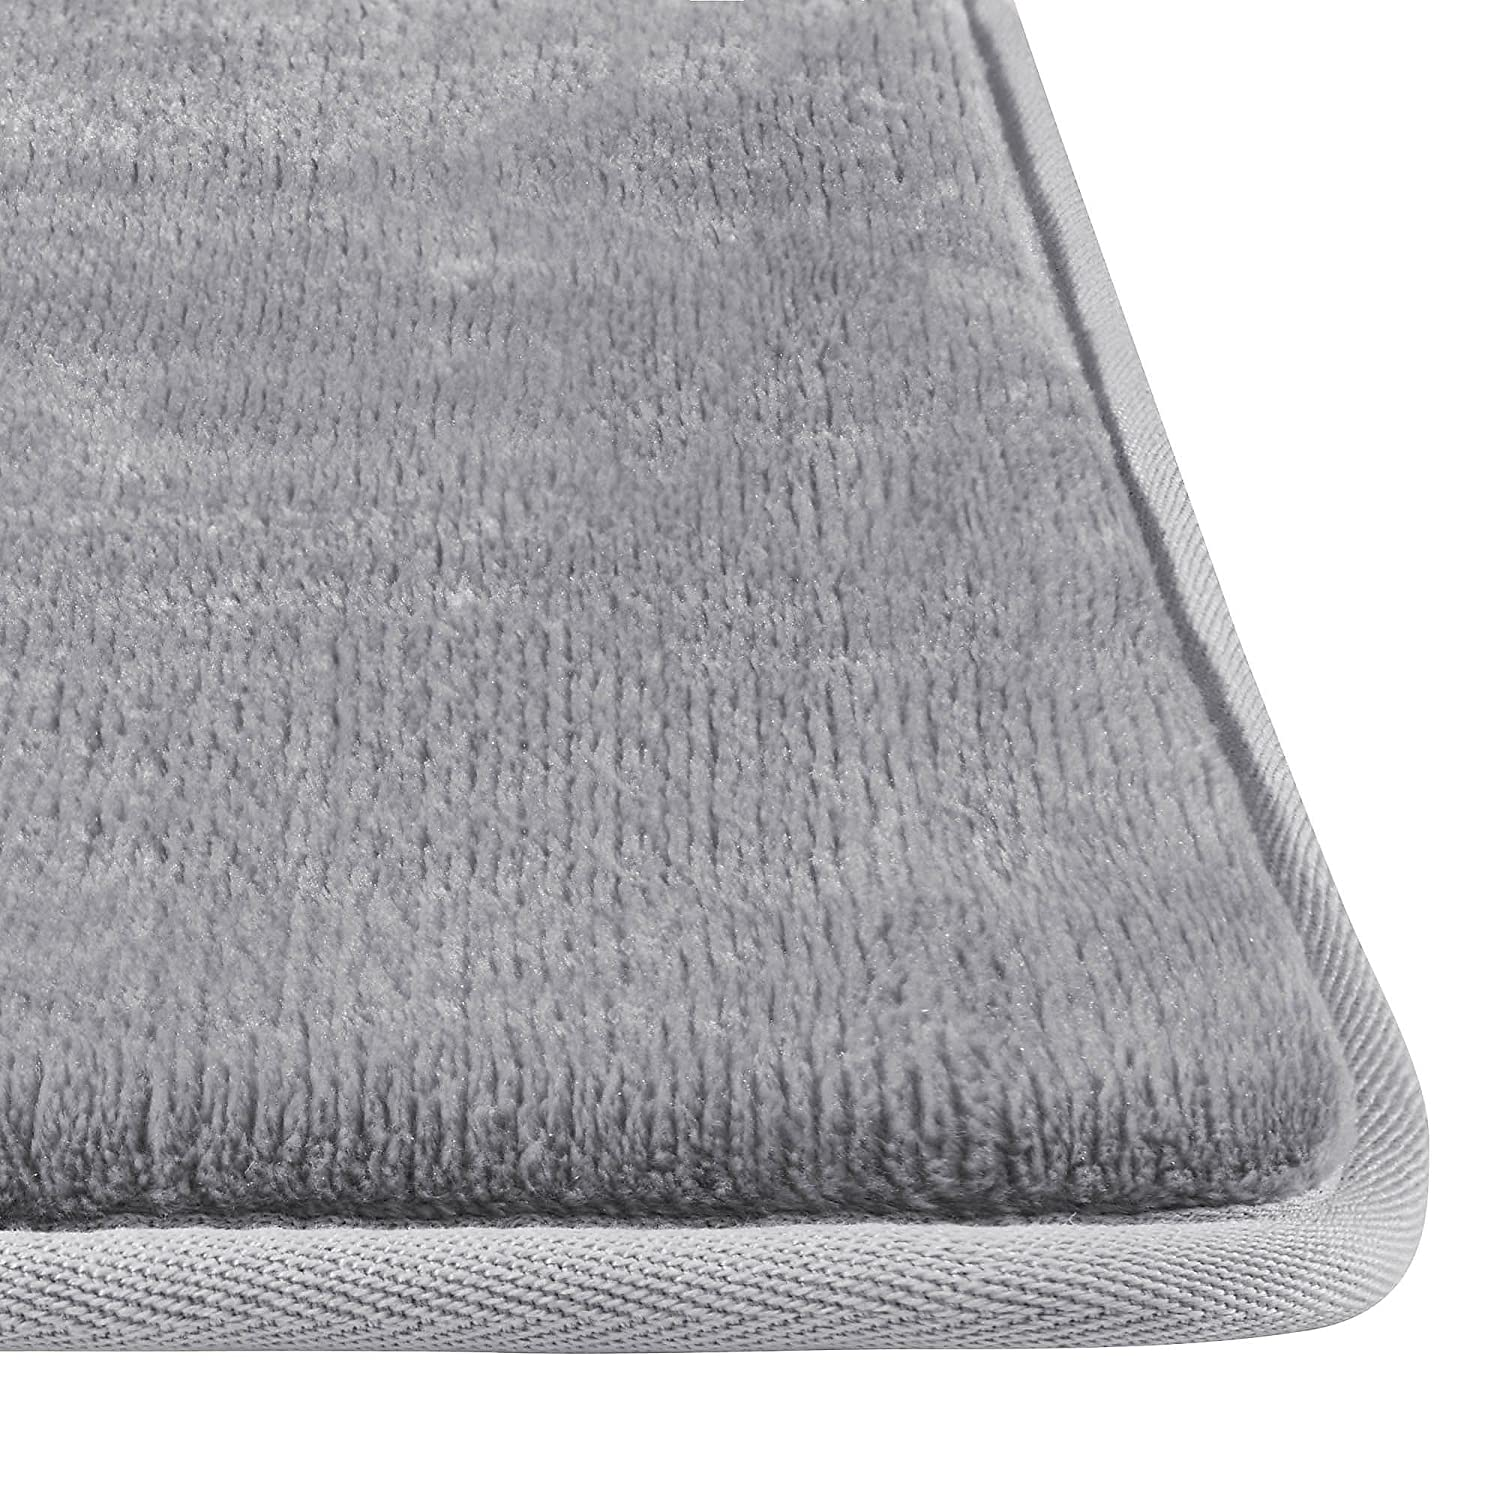 The Best Bathroom Rugs And Non-Slip Mats: Reviews & Buying Guide 2